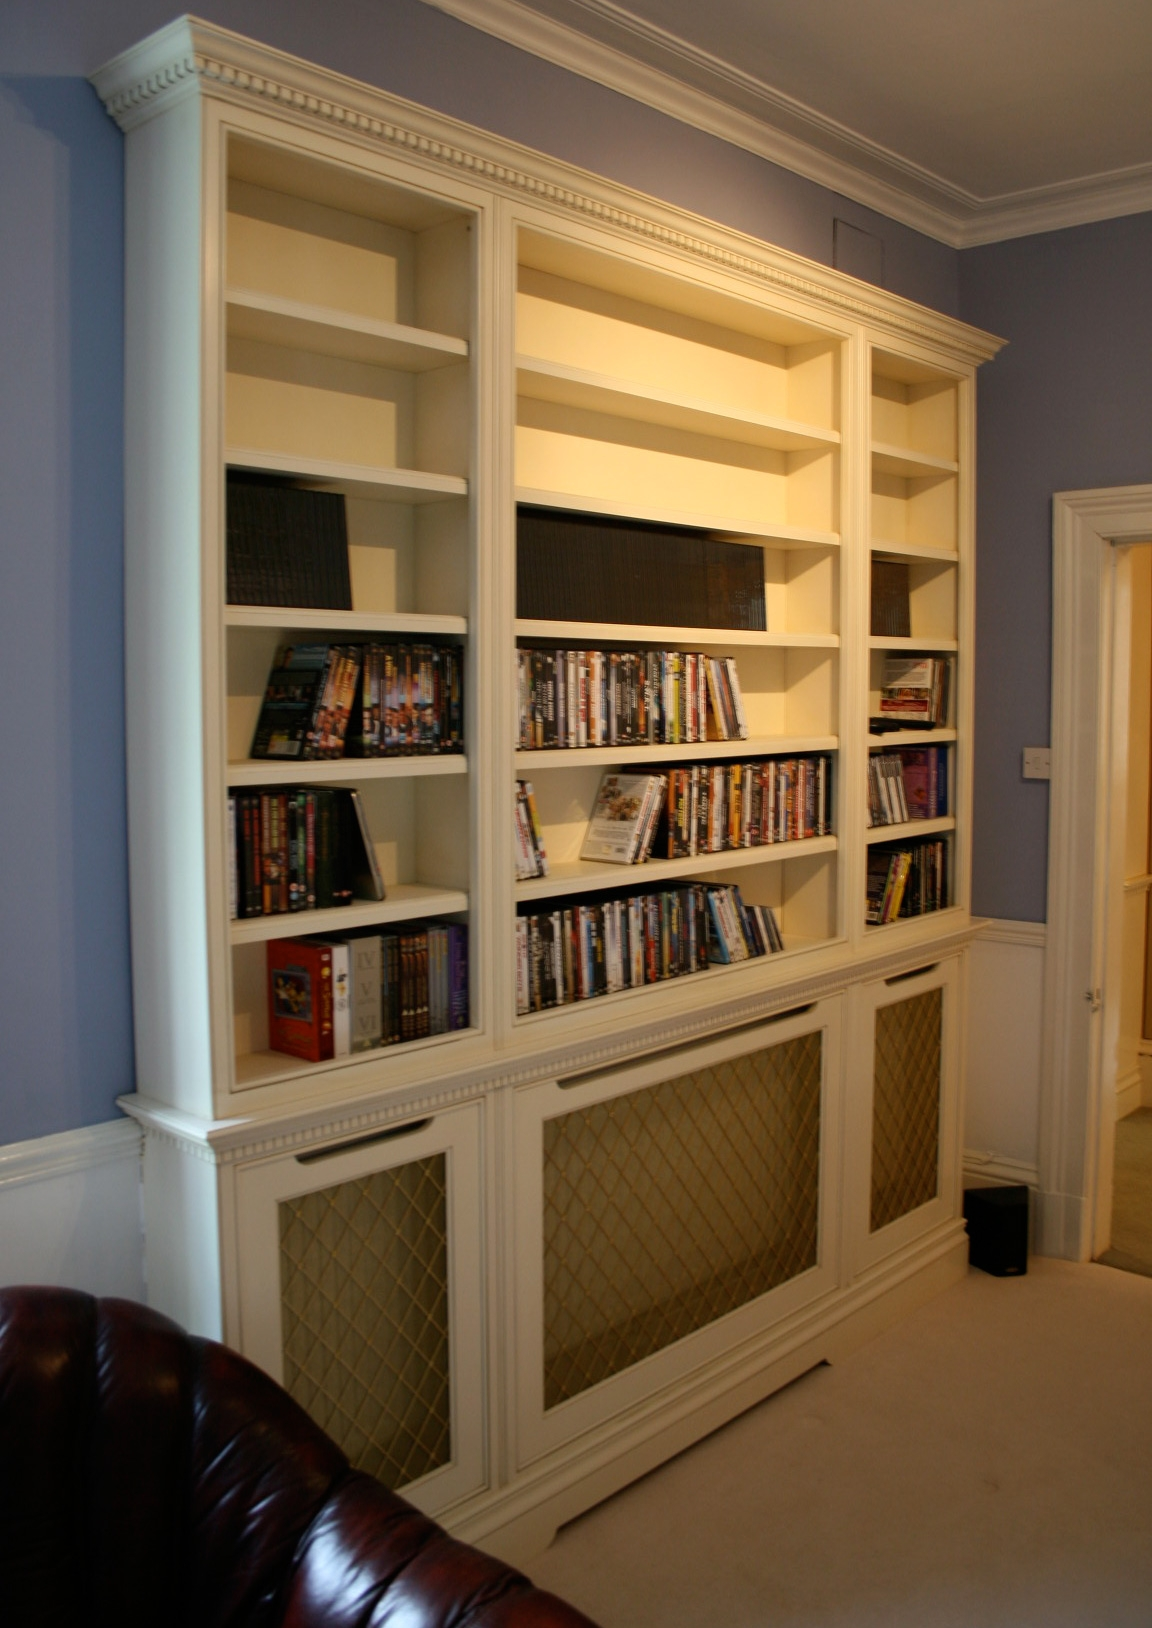 Bespoke Cabinetry Bookcases Desks Cabinet Makers With Regard To Bespoke Tv Cabinets (View 10 of 15)